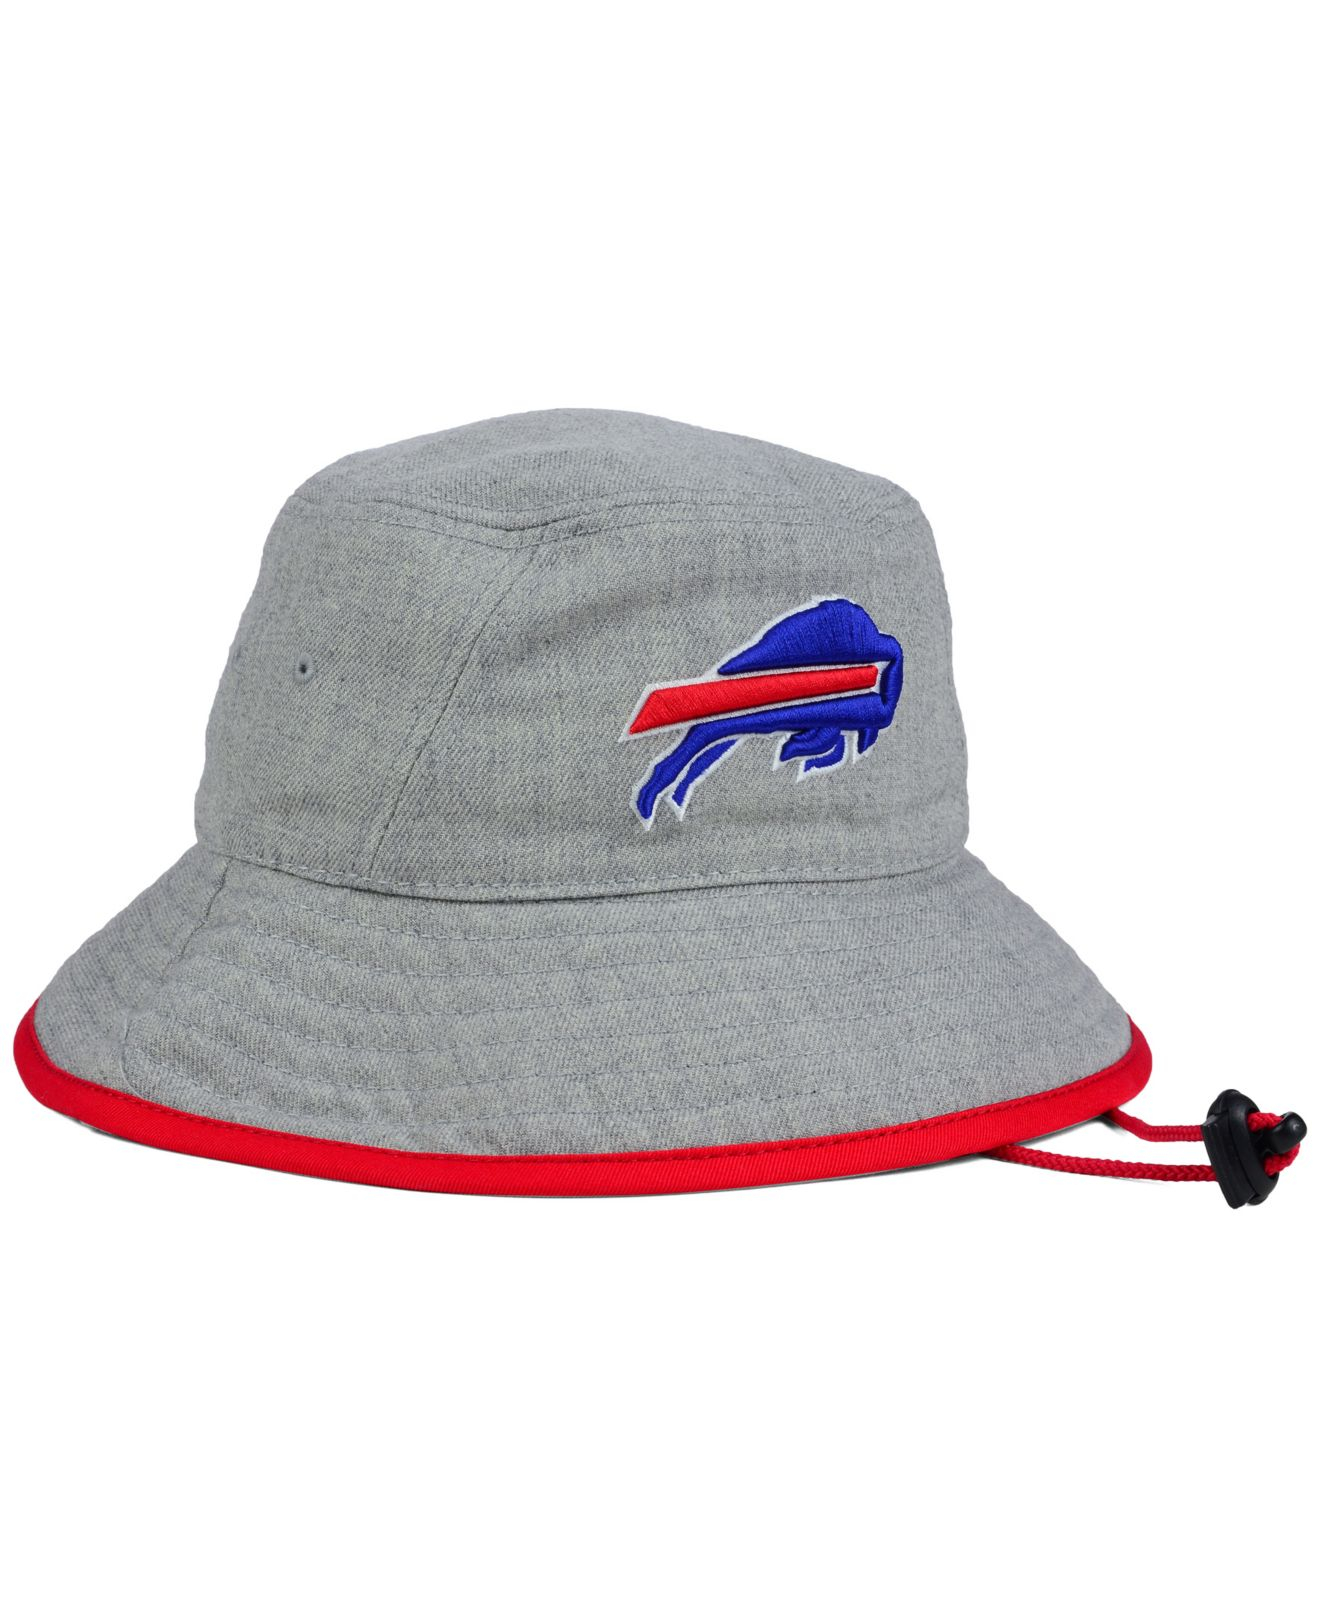 quality design 2ed7c 0a44f ... low cost lyst ktz buffalo bills nfl heather gray bucket hat in gray for  men f8e87